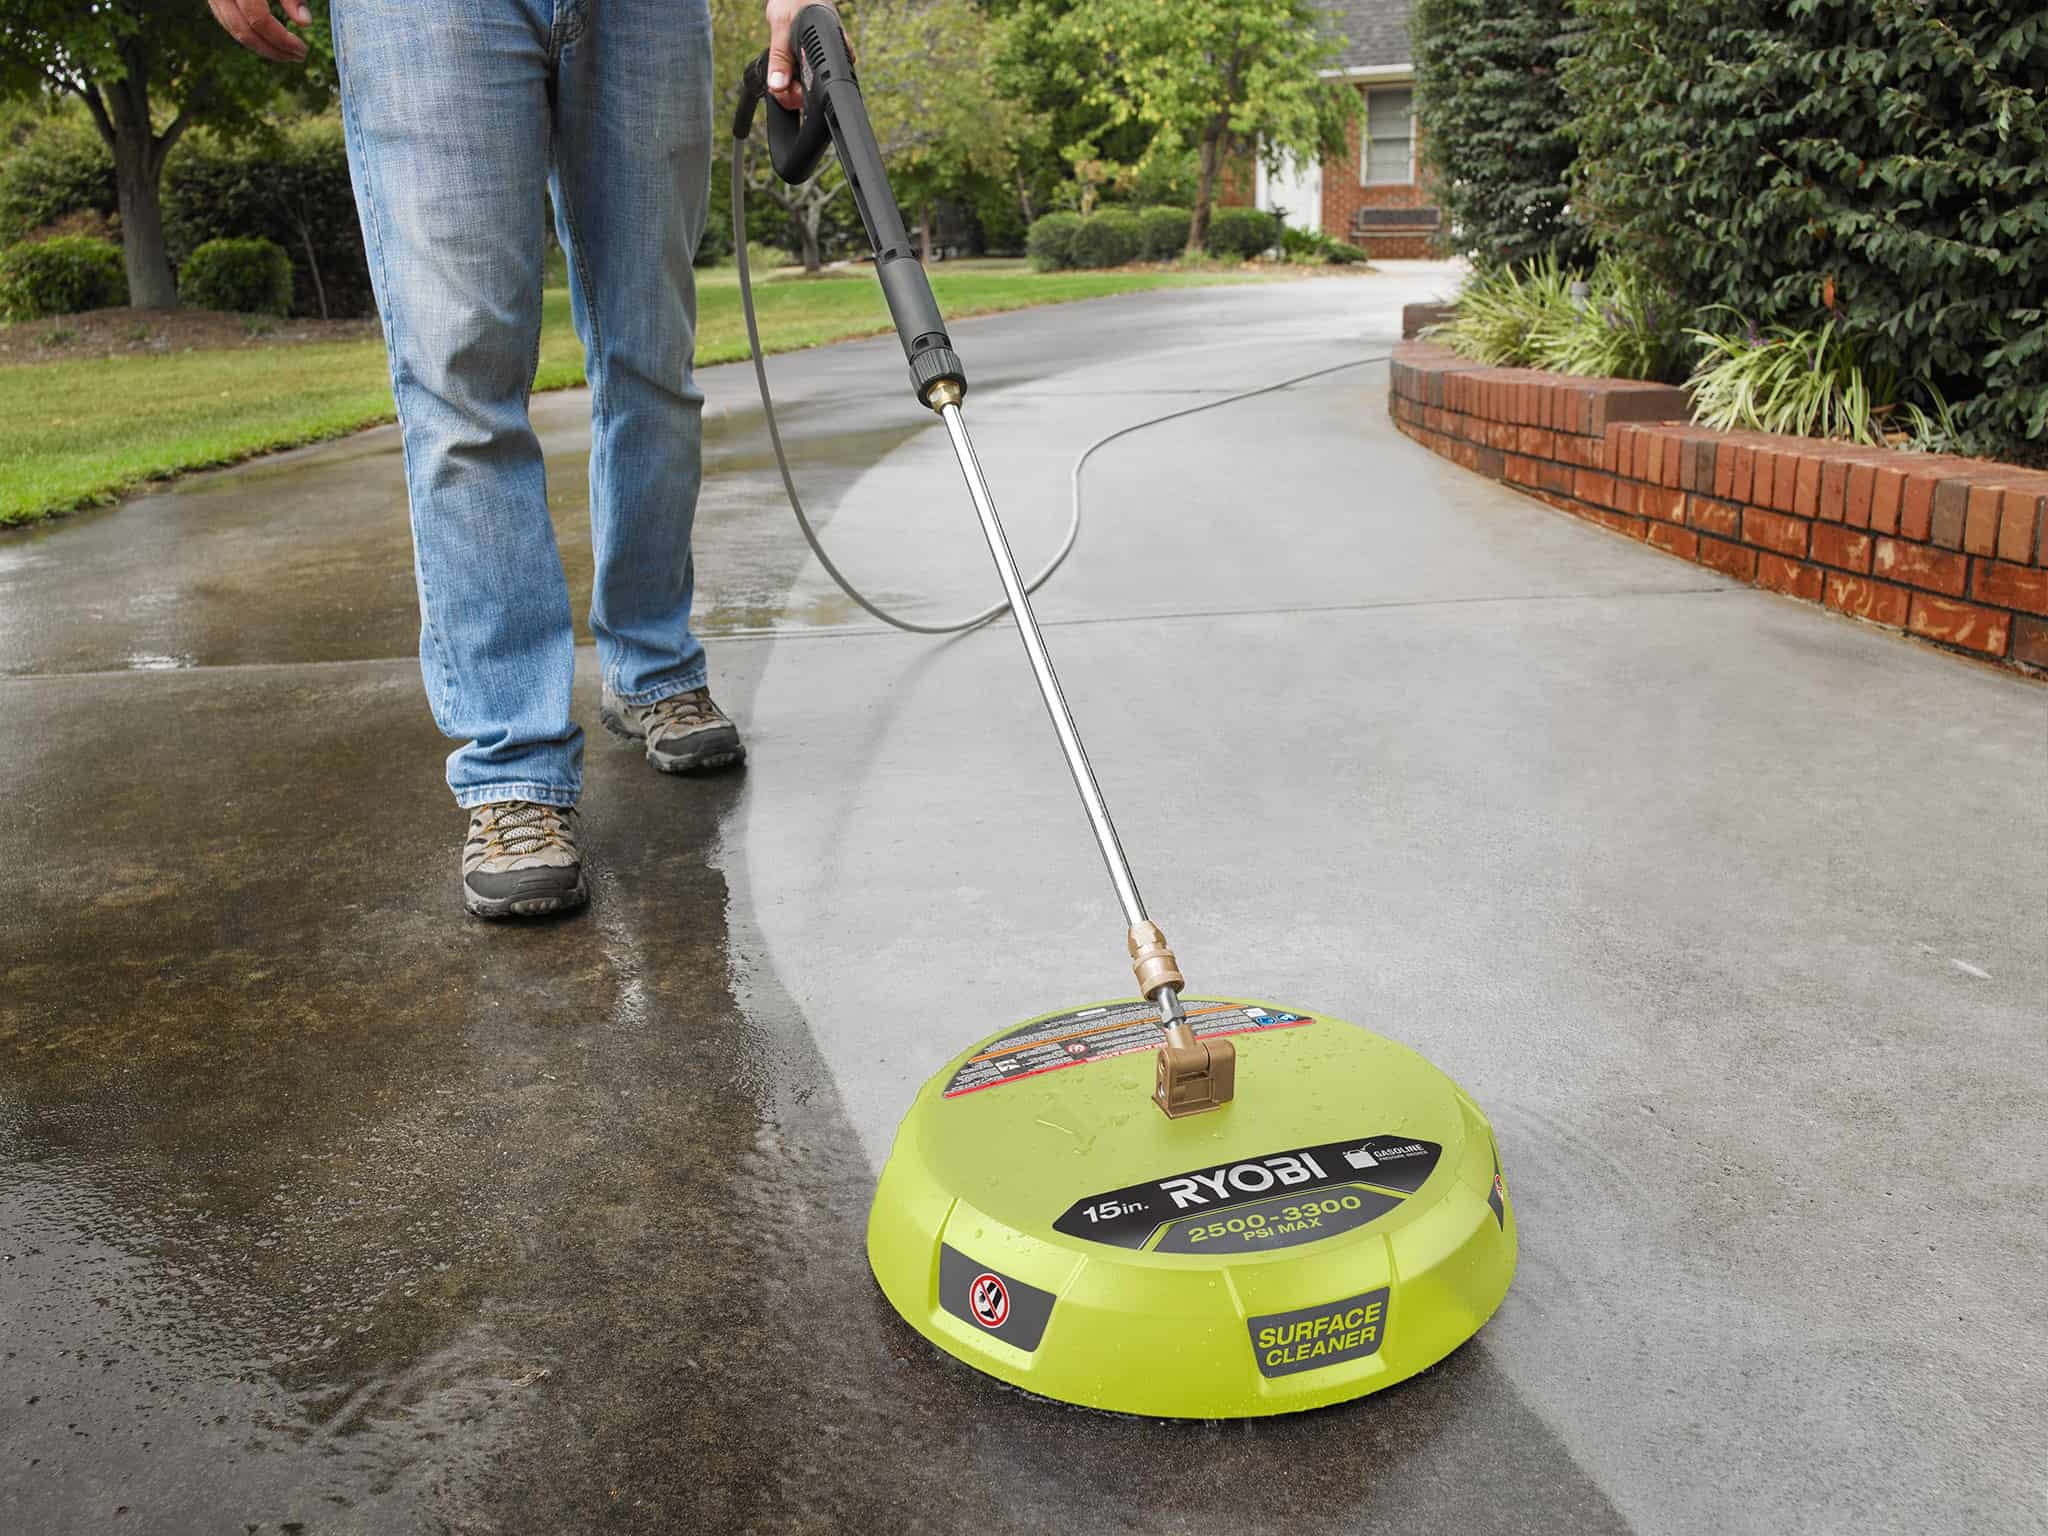 Ryobi power washer with surface cleaner